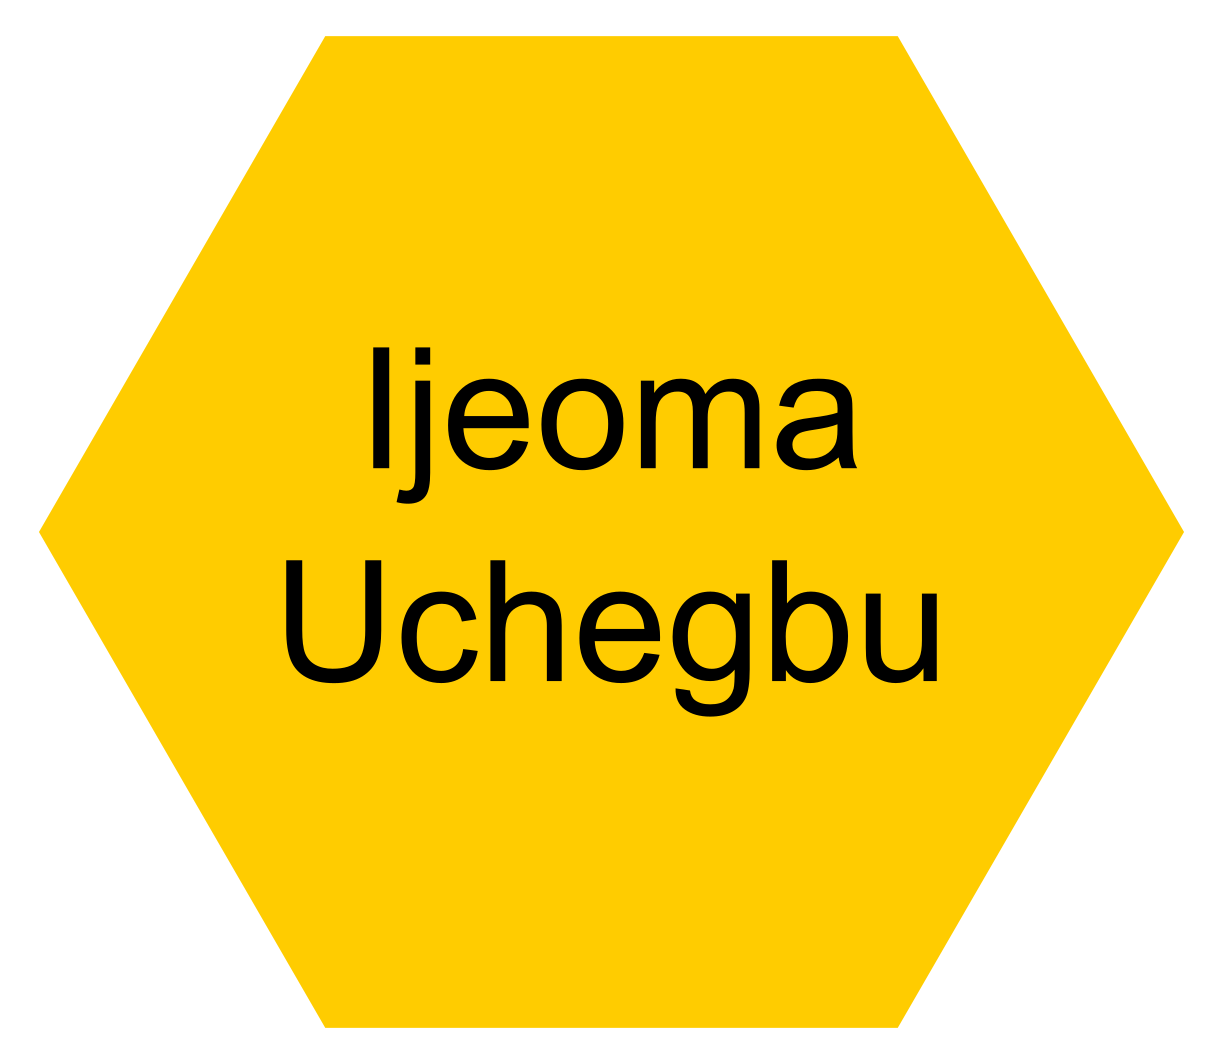 Prof. Ijeoma Uchegbu (UCL School of Pharmacy: Principal Investigator) - Click this icon to reveal their contact details.